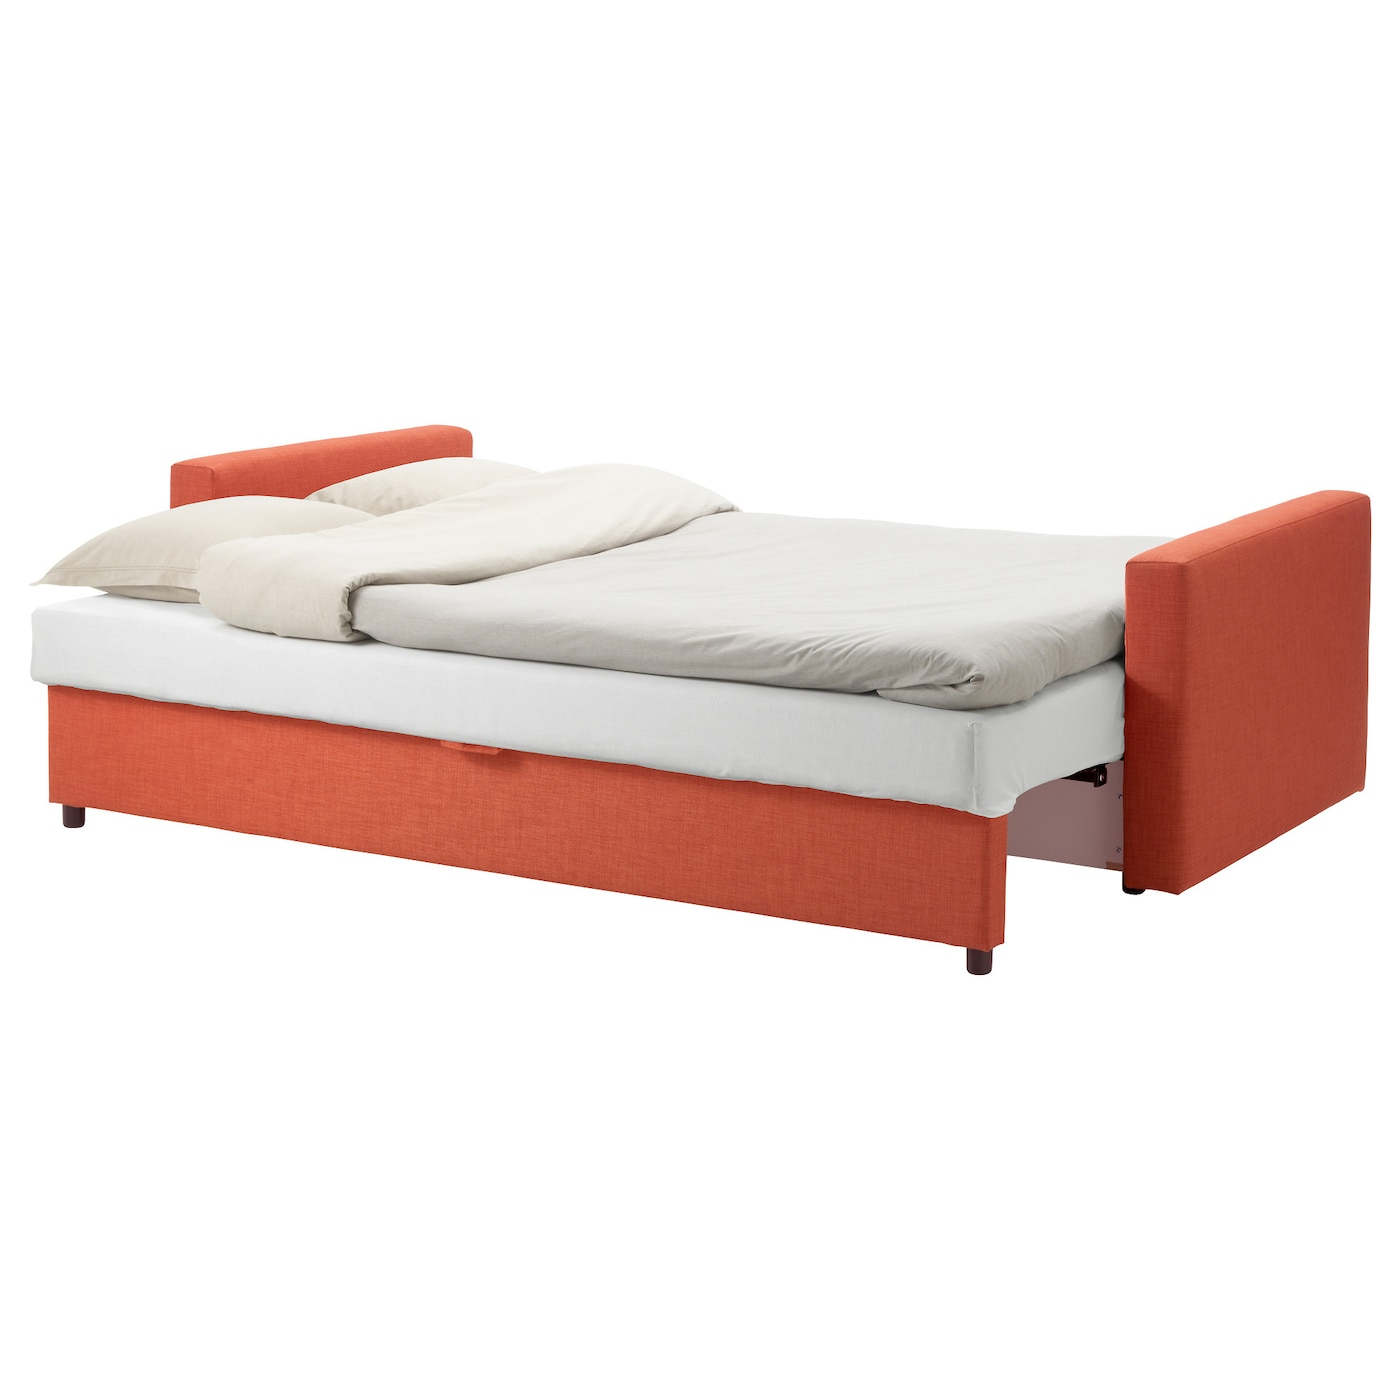 How To Sell A Sofa Bed